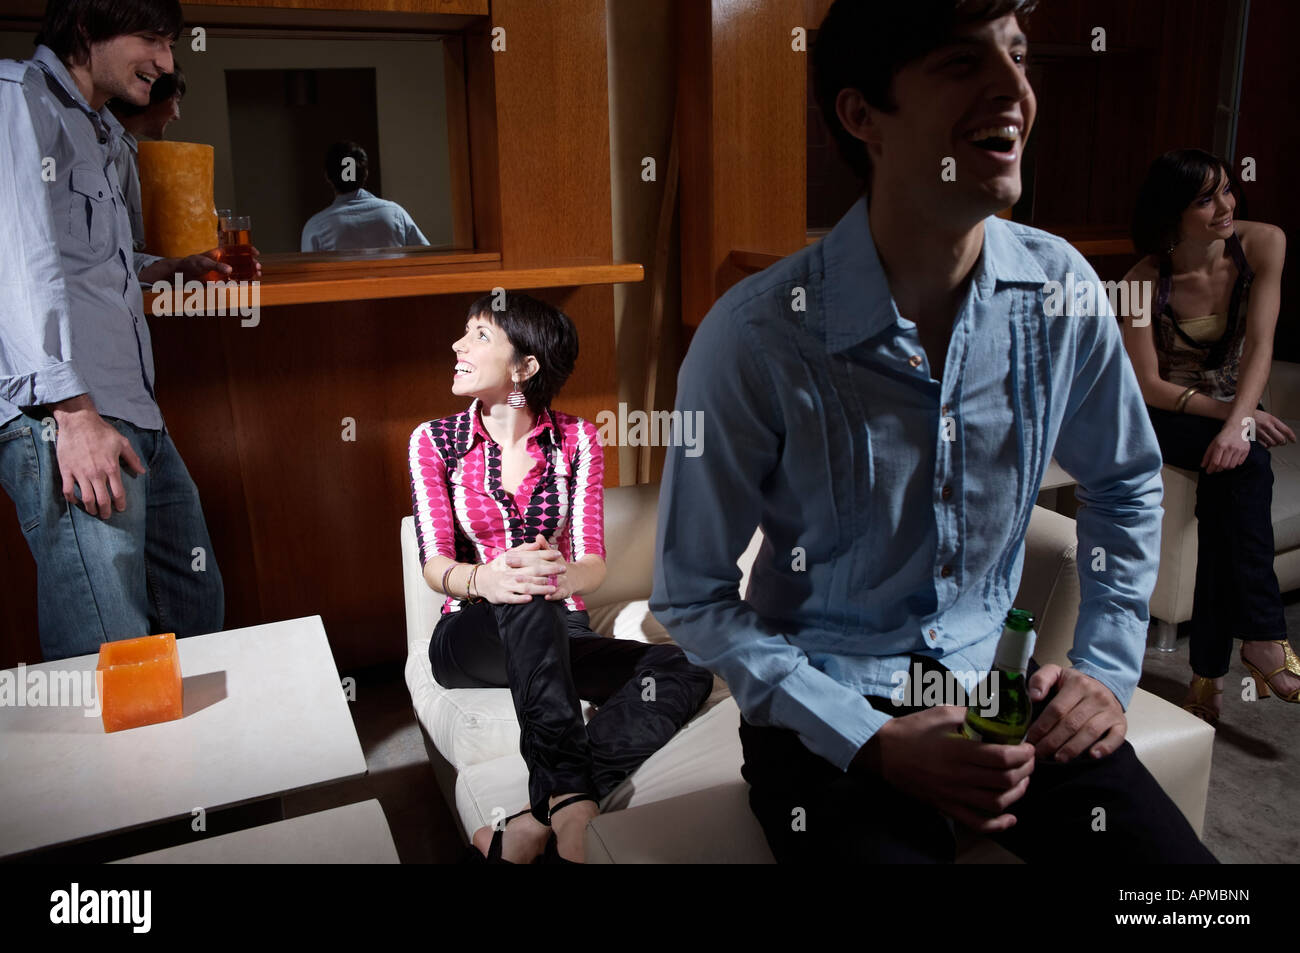 Group of people in a bar - Stock Image